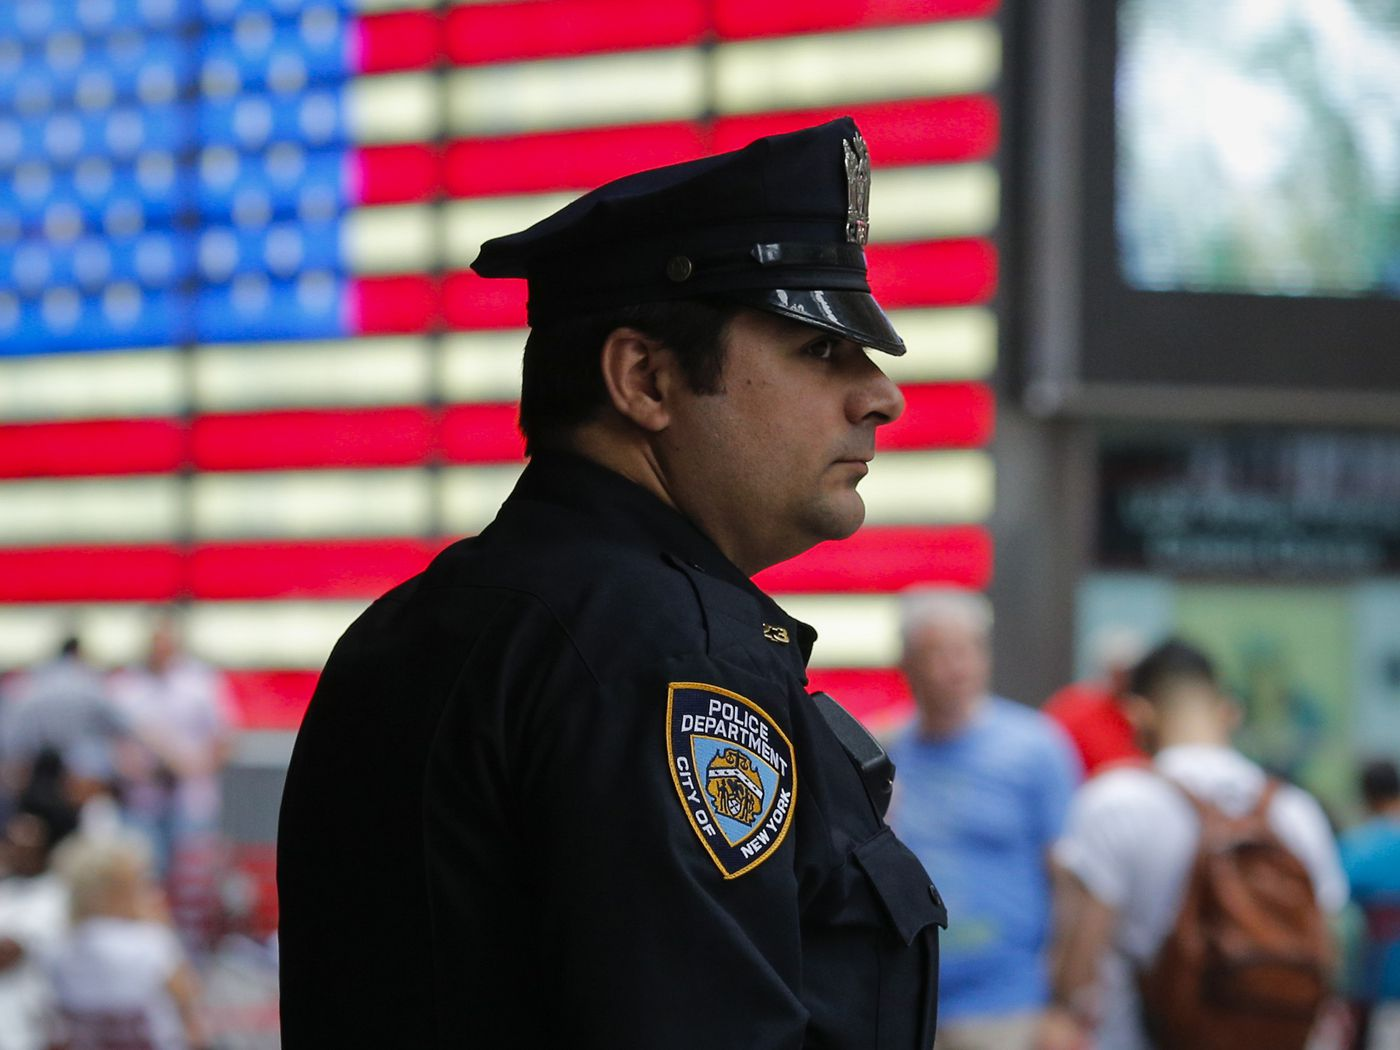 01401b83e The theory: putting more police on the streets prevented crime - Vox